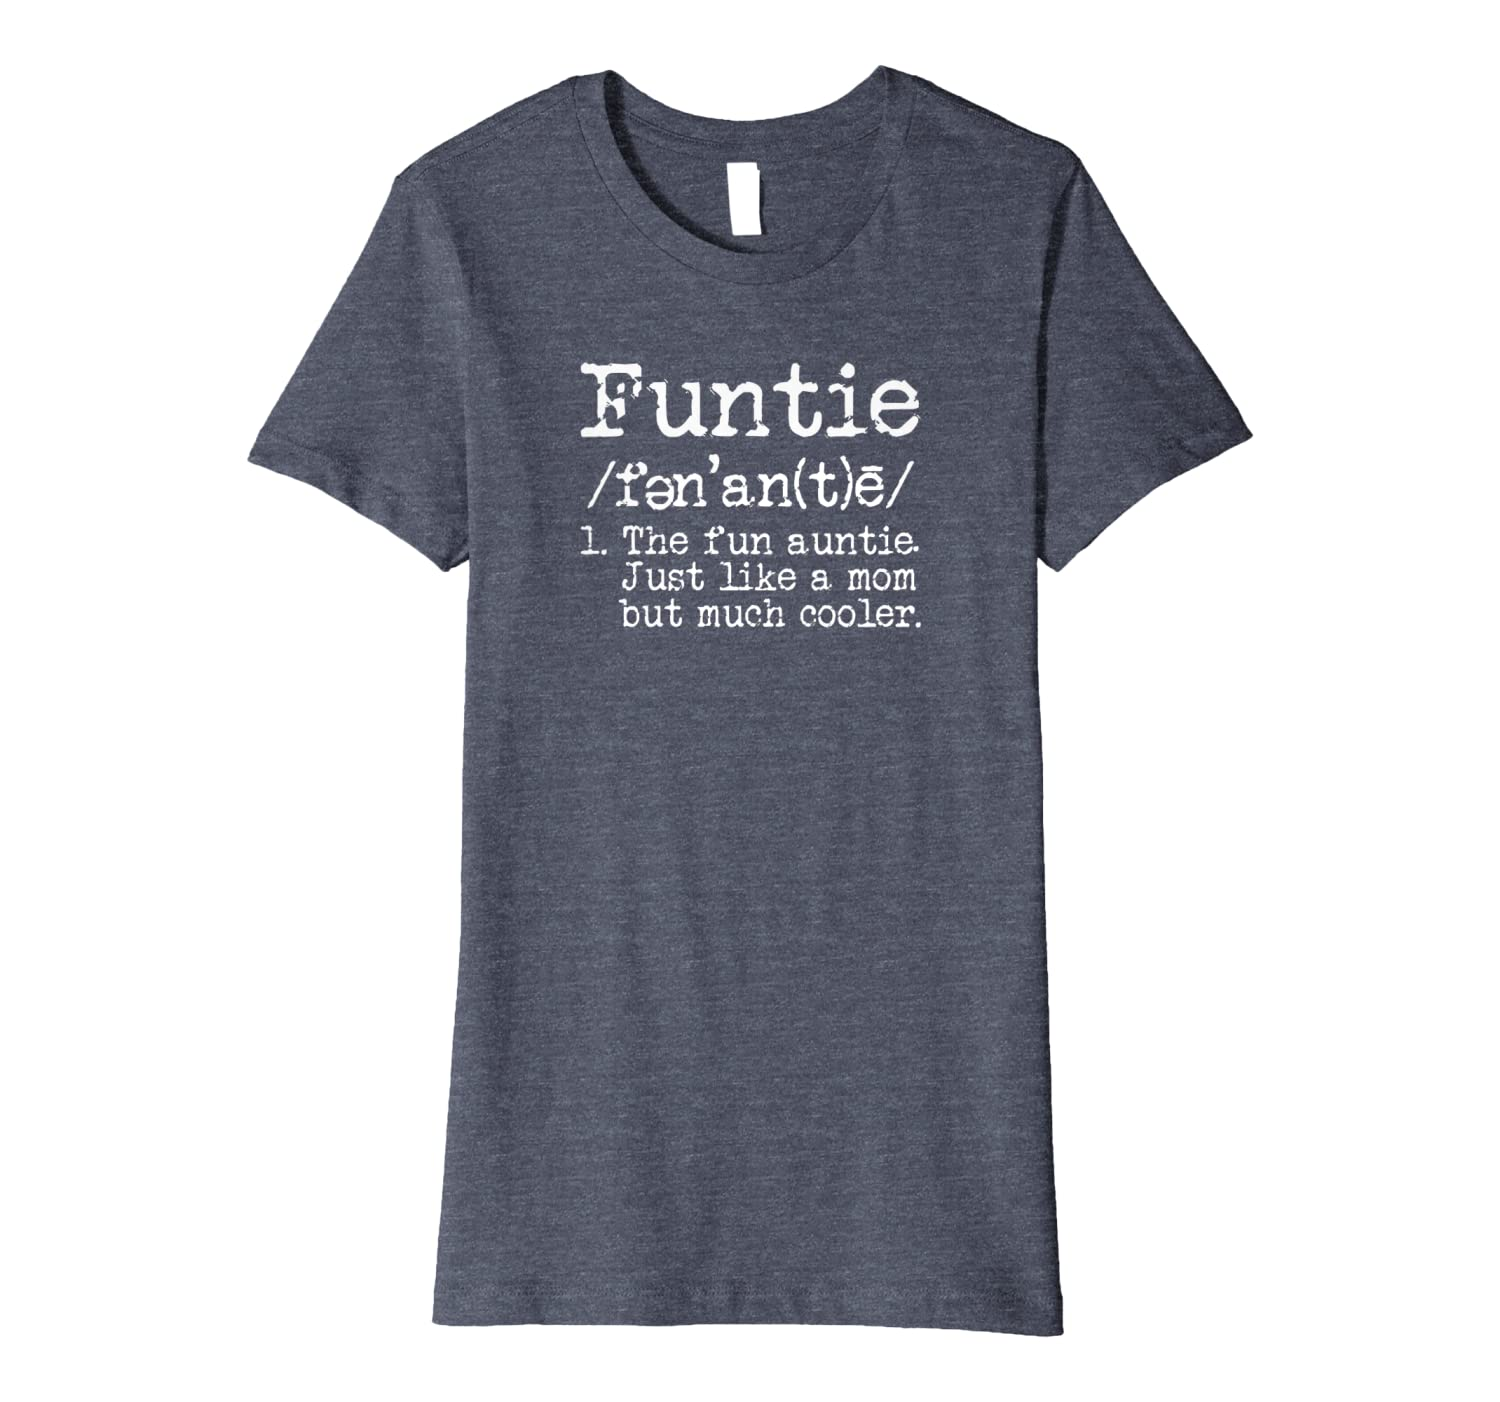 8da2f7b9a6 Amazon.com: Aunt T-shirt Funtie The Fun Auntie Funny Novelty T-shirt:  Clothing